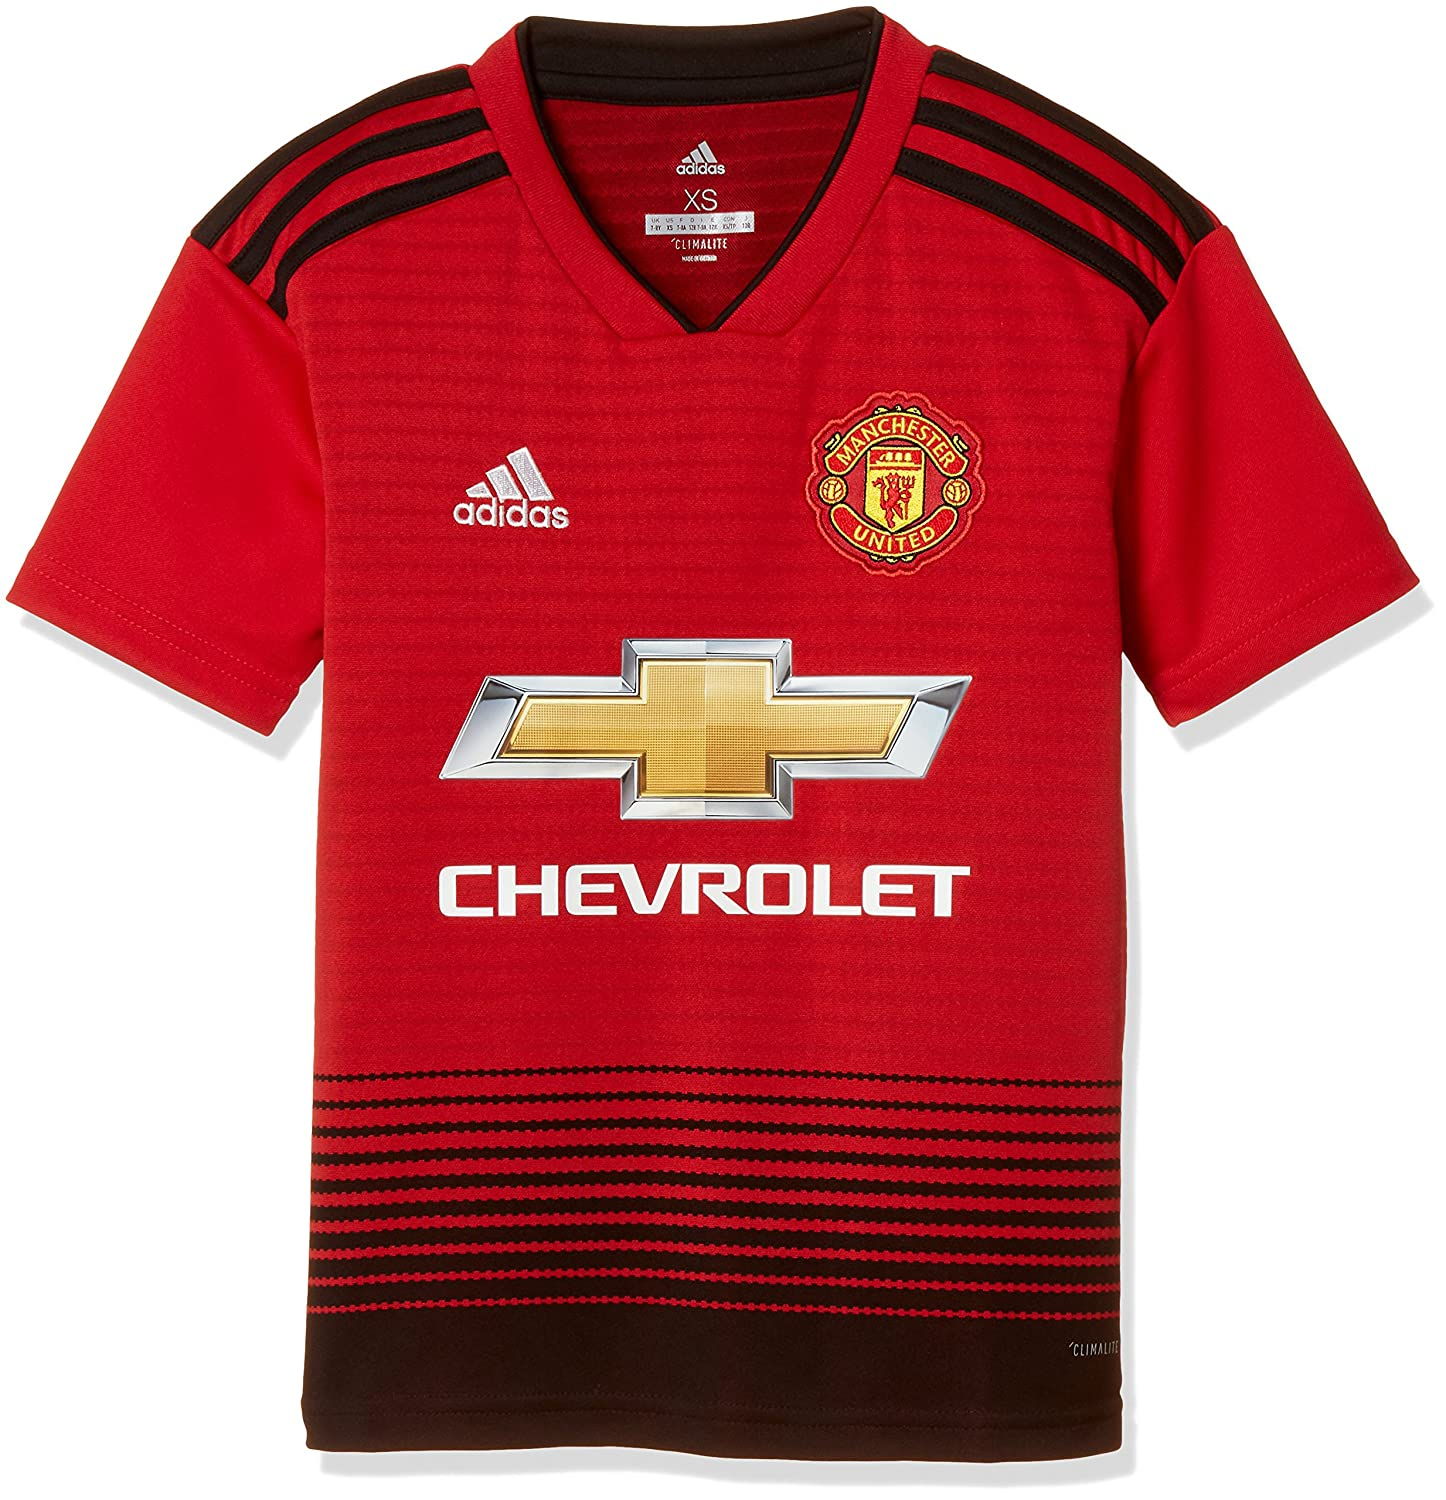 Adidas Unisex Kinder Shorts 18 19 Manchester United Home